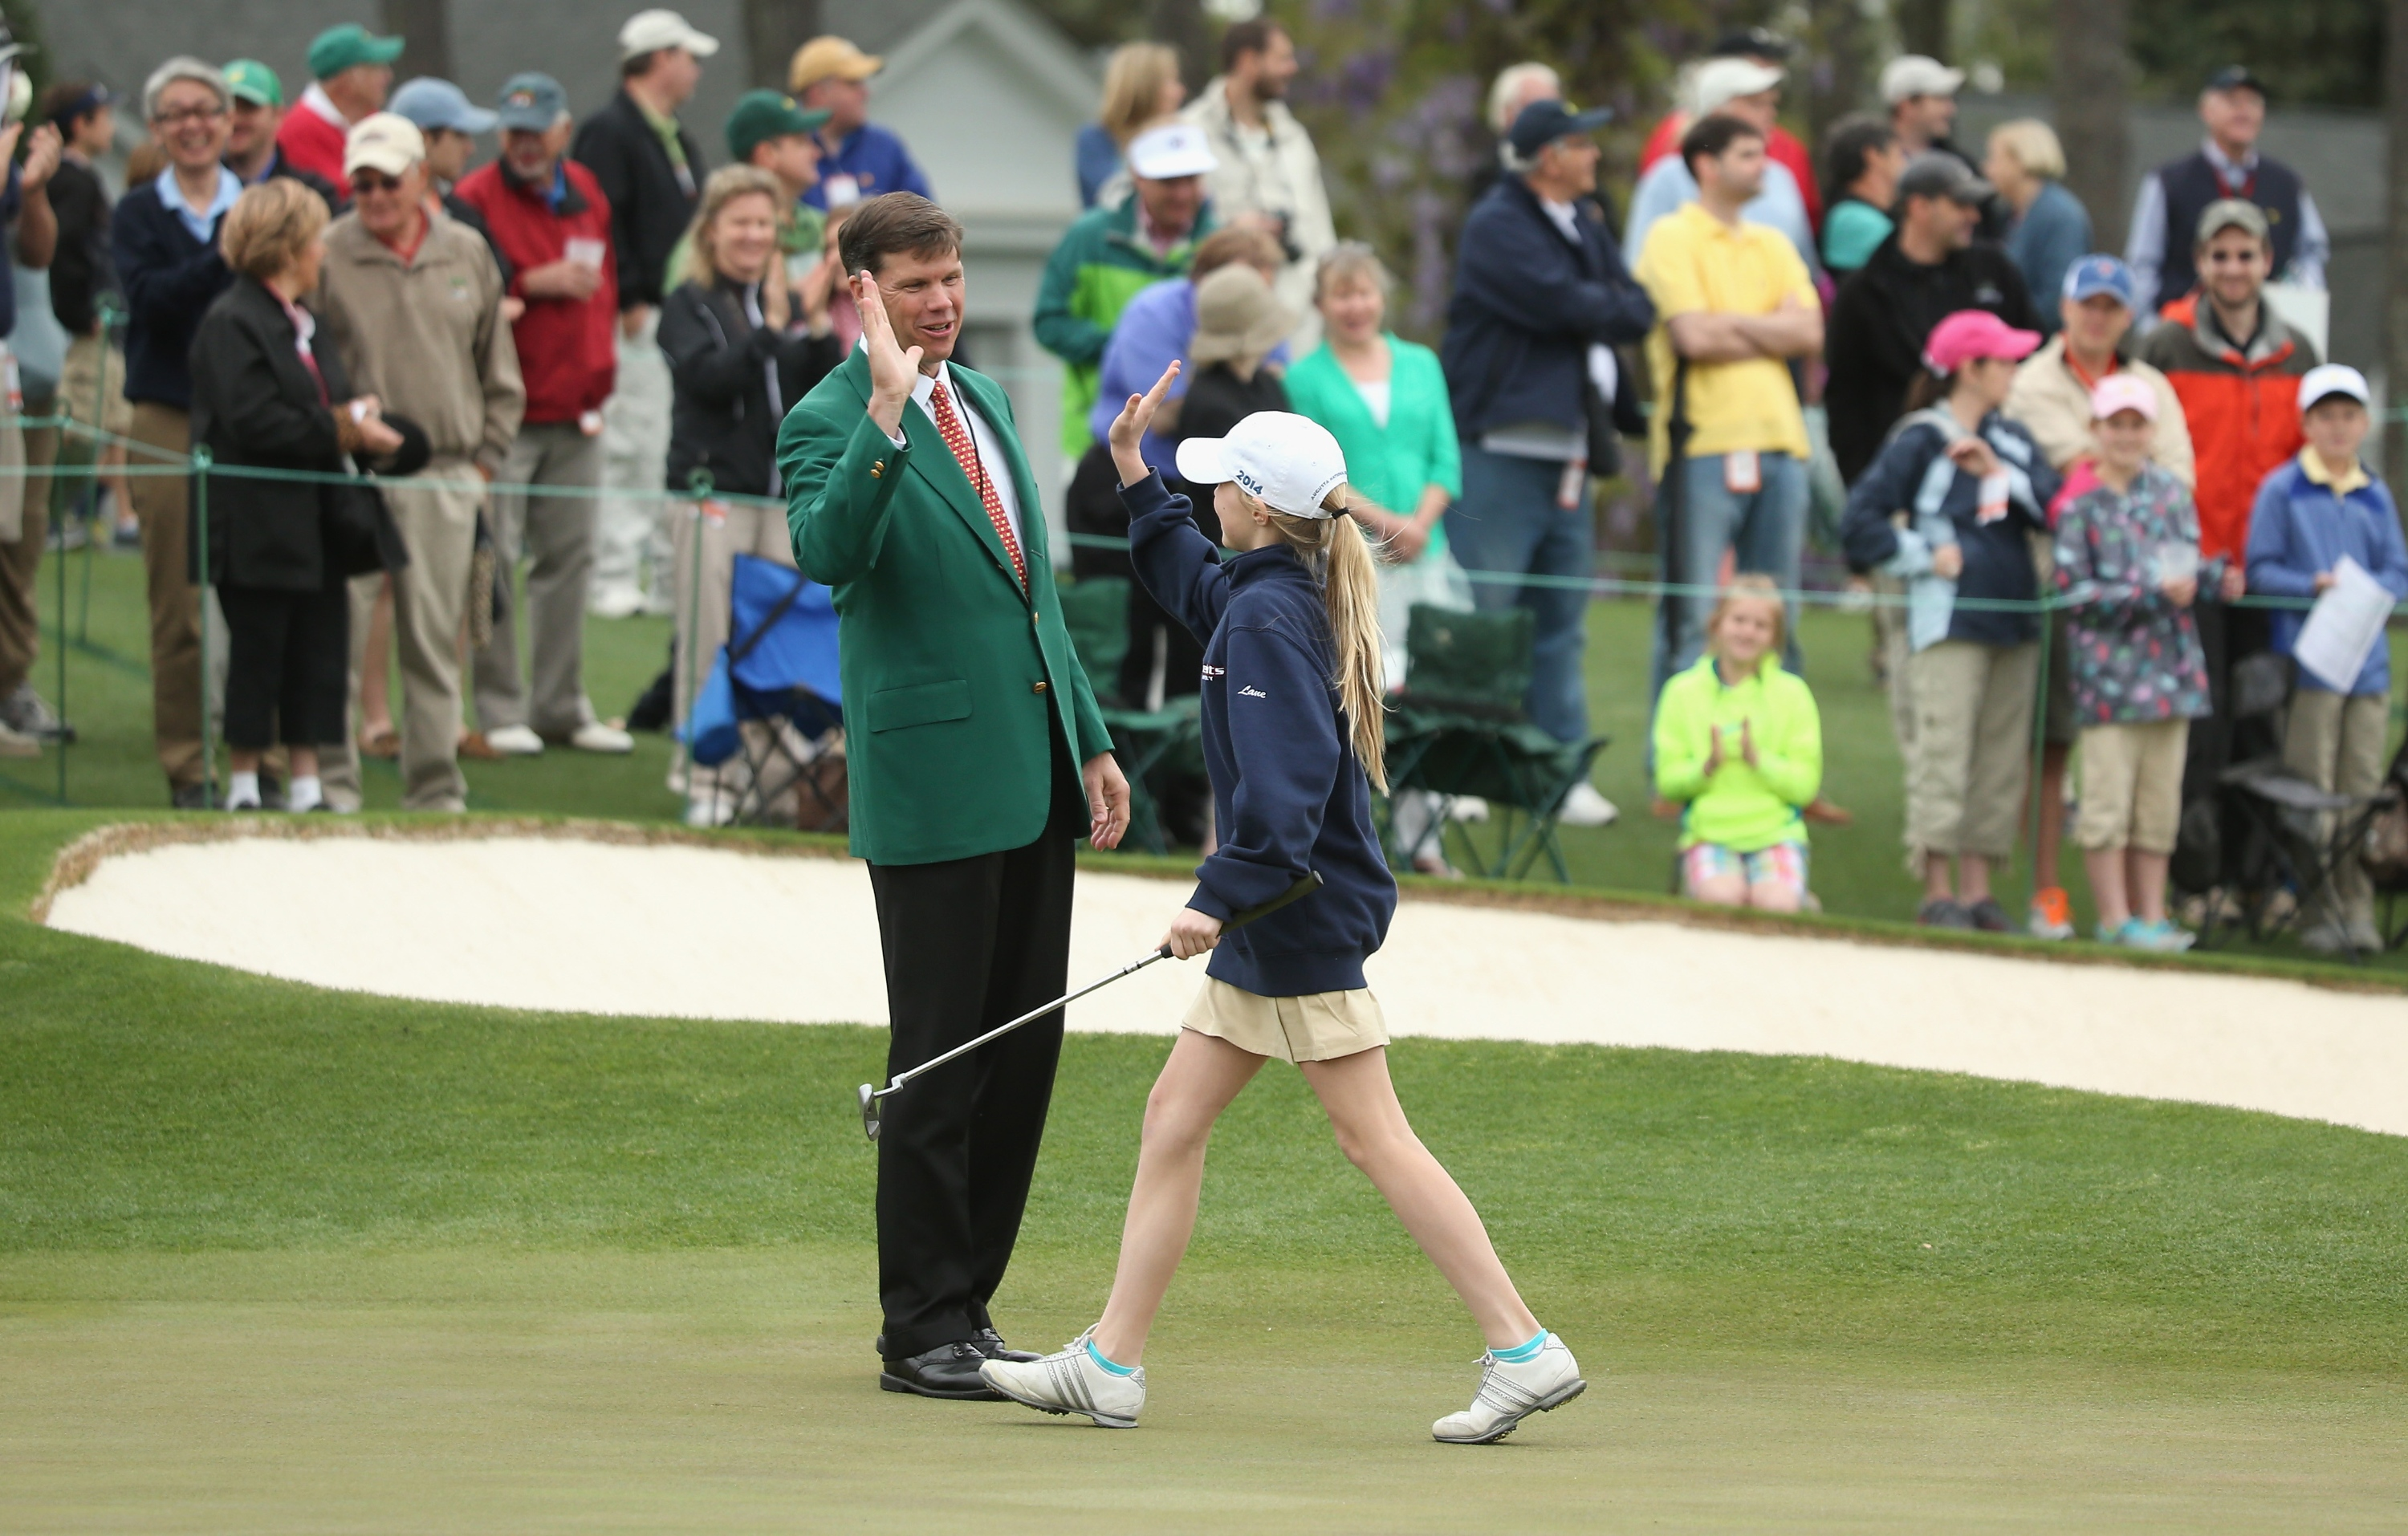 Drive, Chip and Putt Championship at Augusta National Golf Club